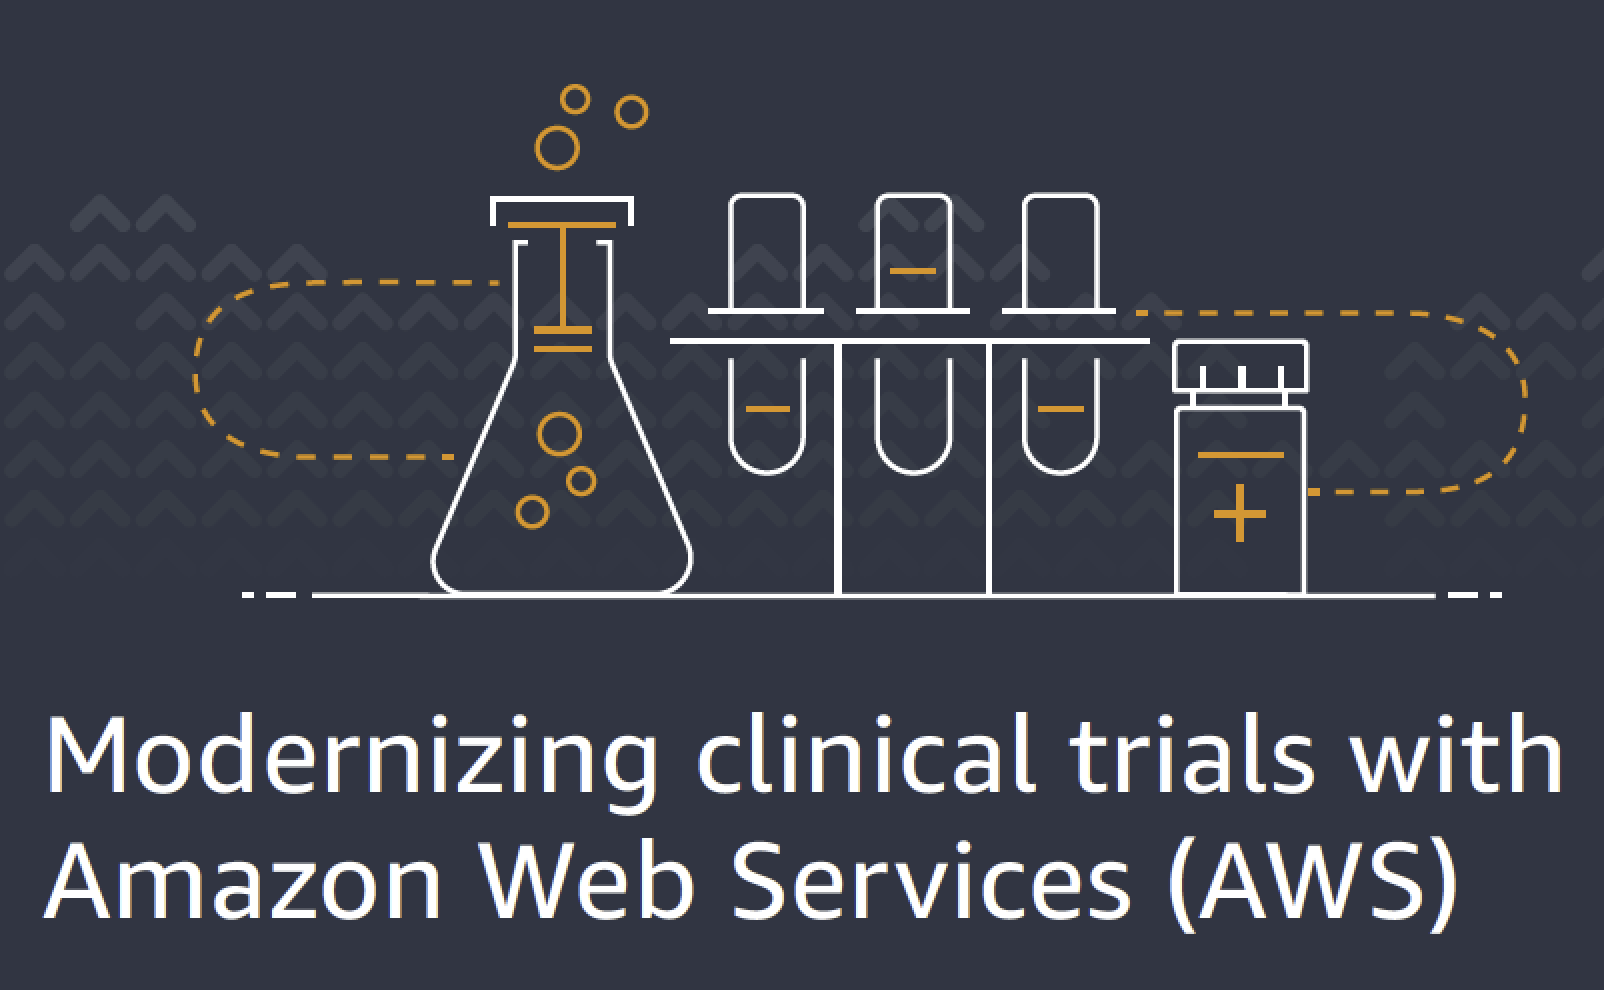 Modernizing Clinical Trials with Amazon Web Services (AWS)